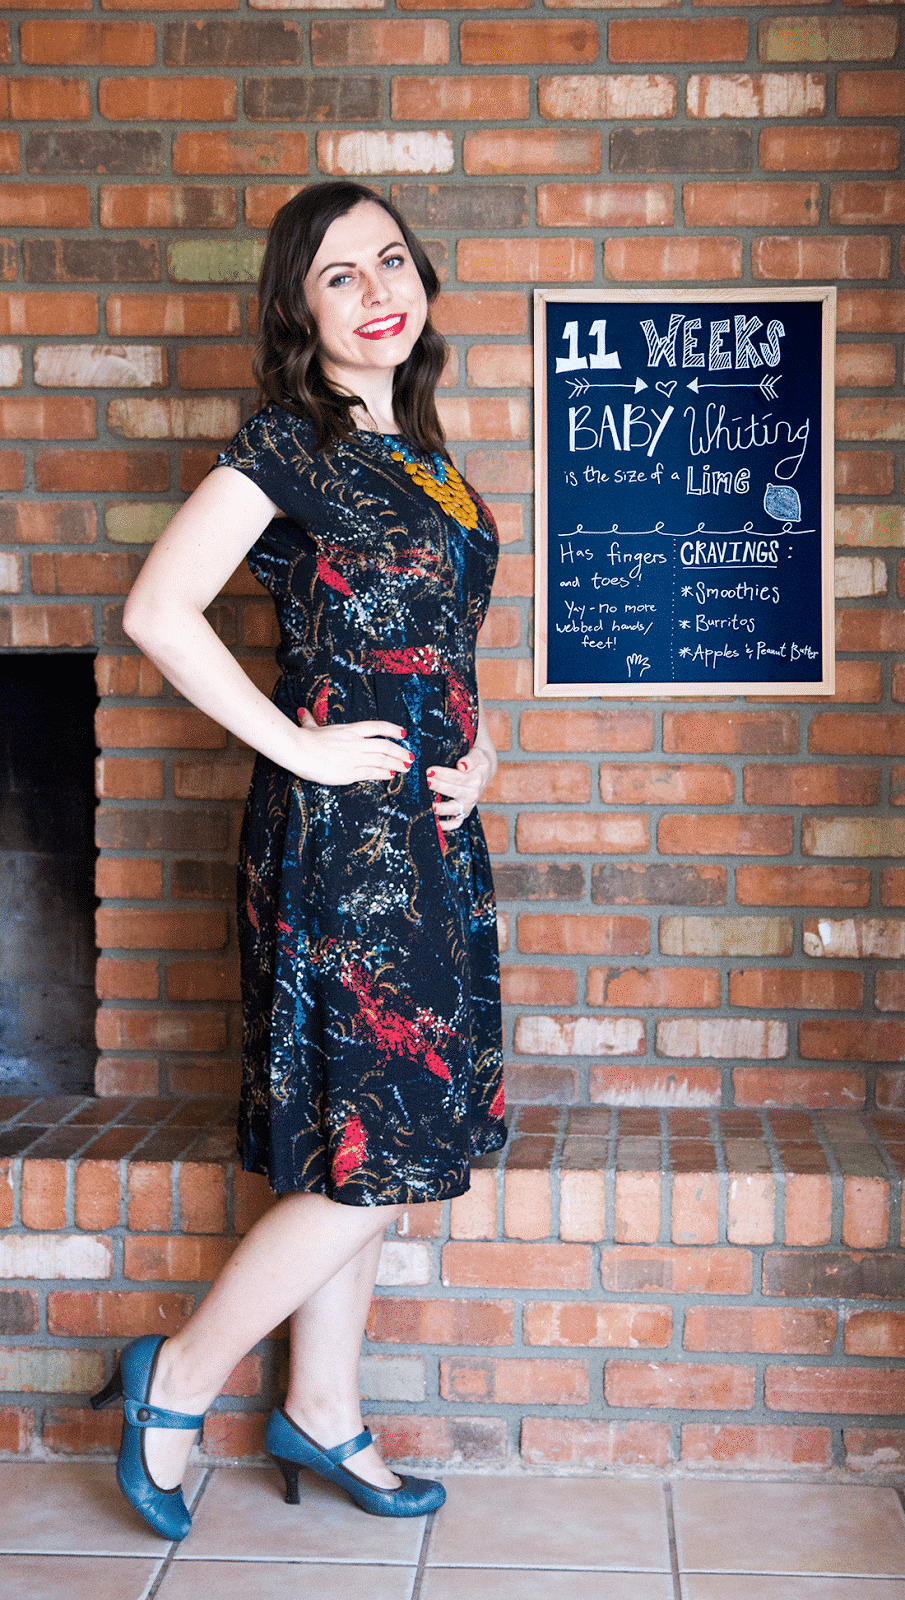 Pregnancy Update: 11 Weeks Pregnant